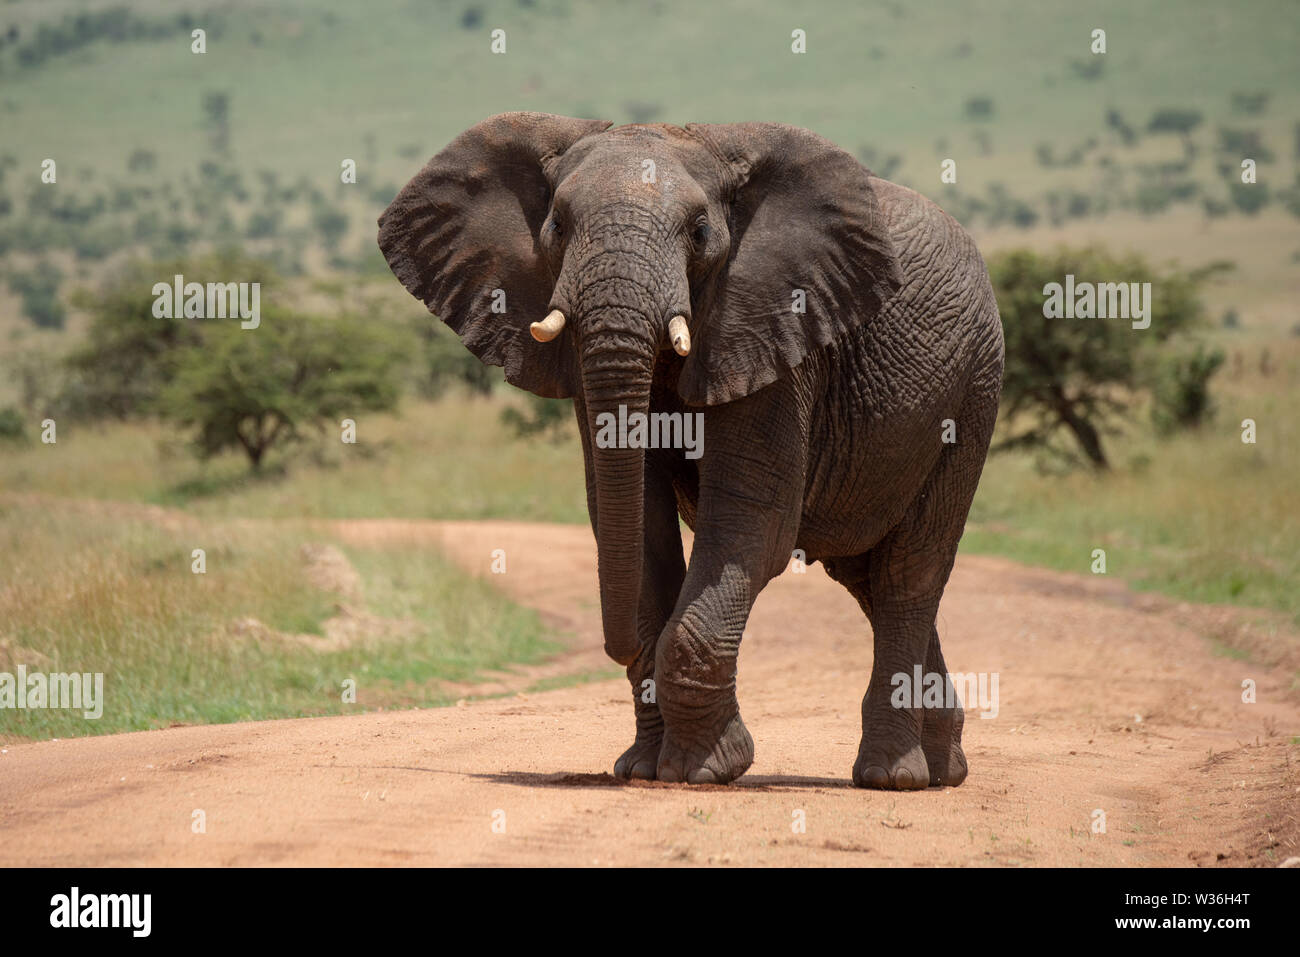 African elephant raises foot while crossing track - Stock Image